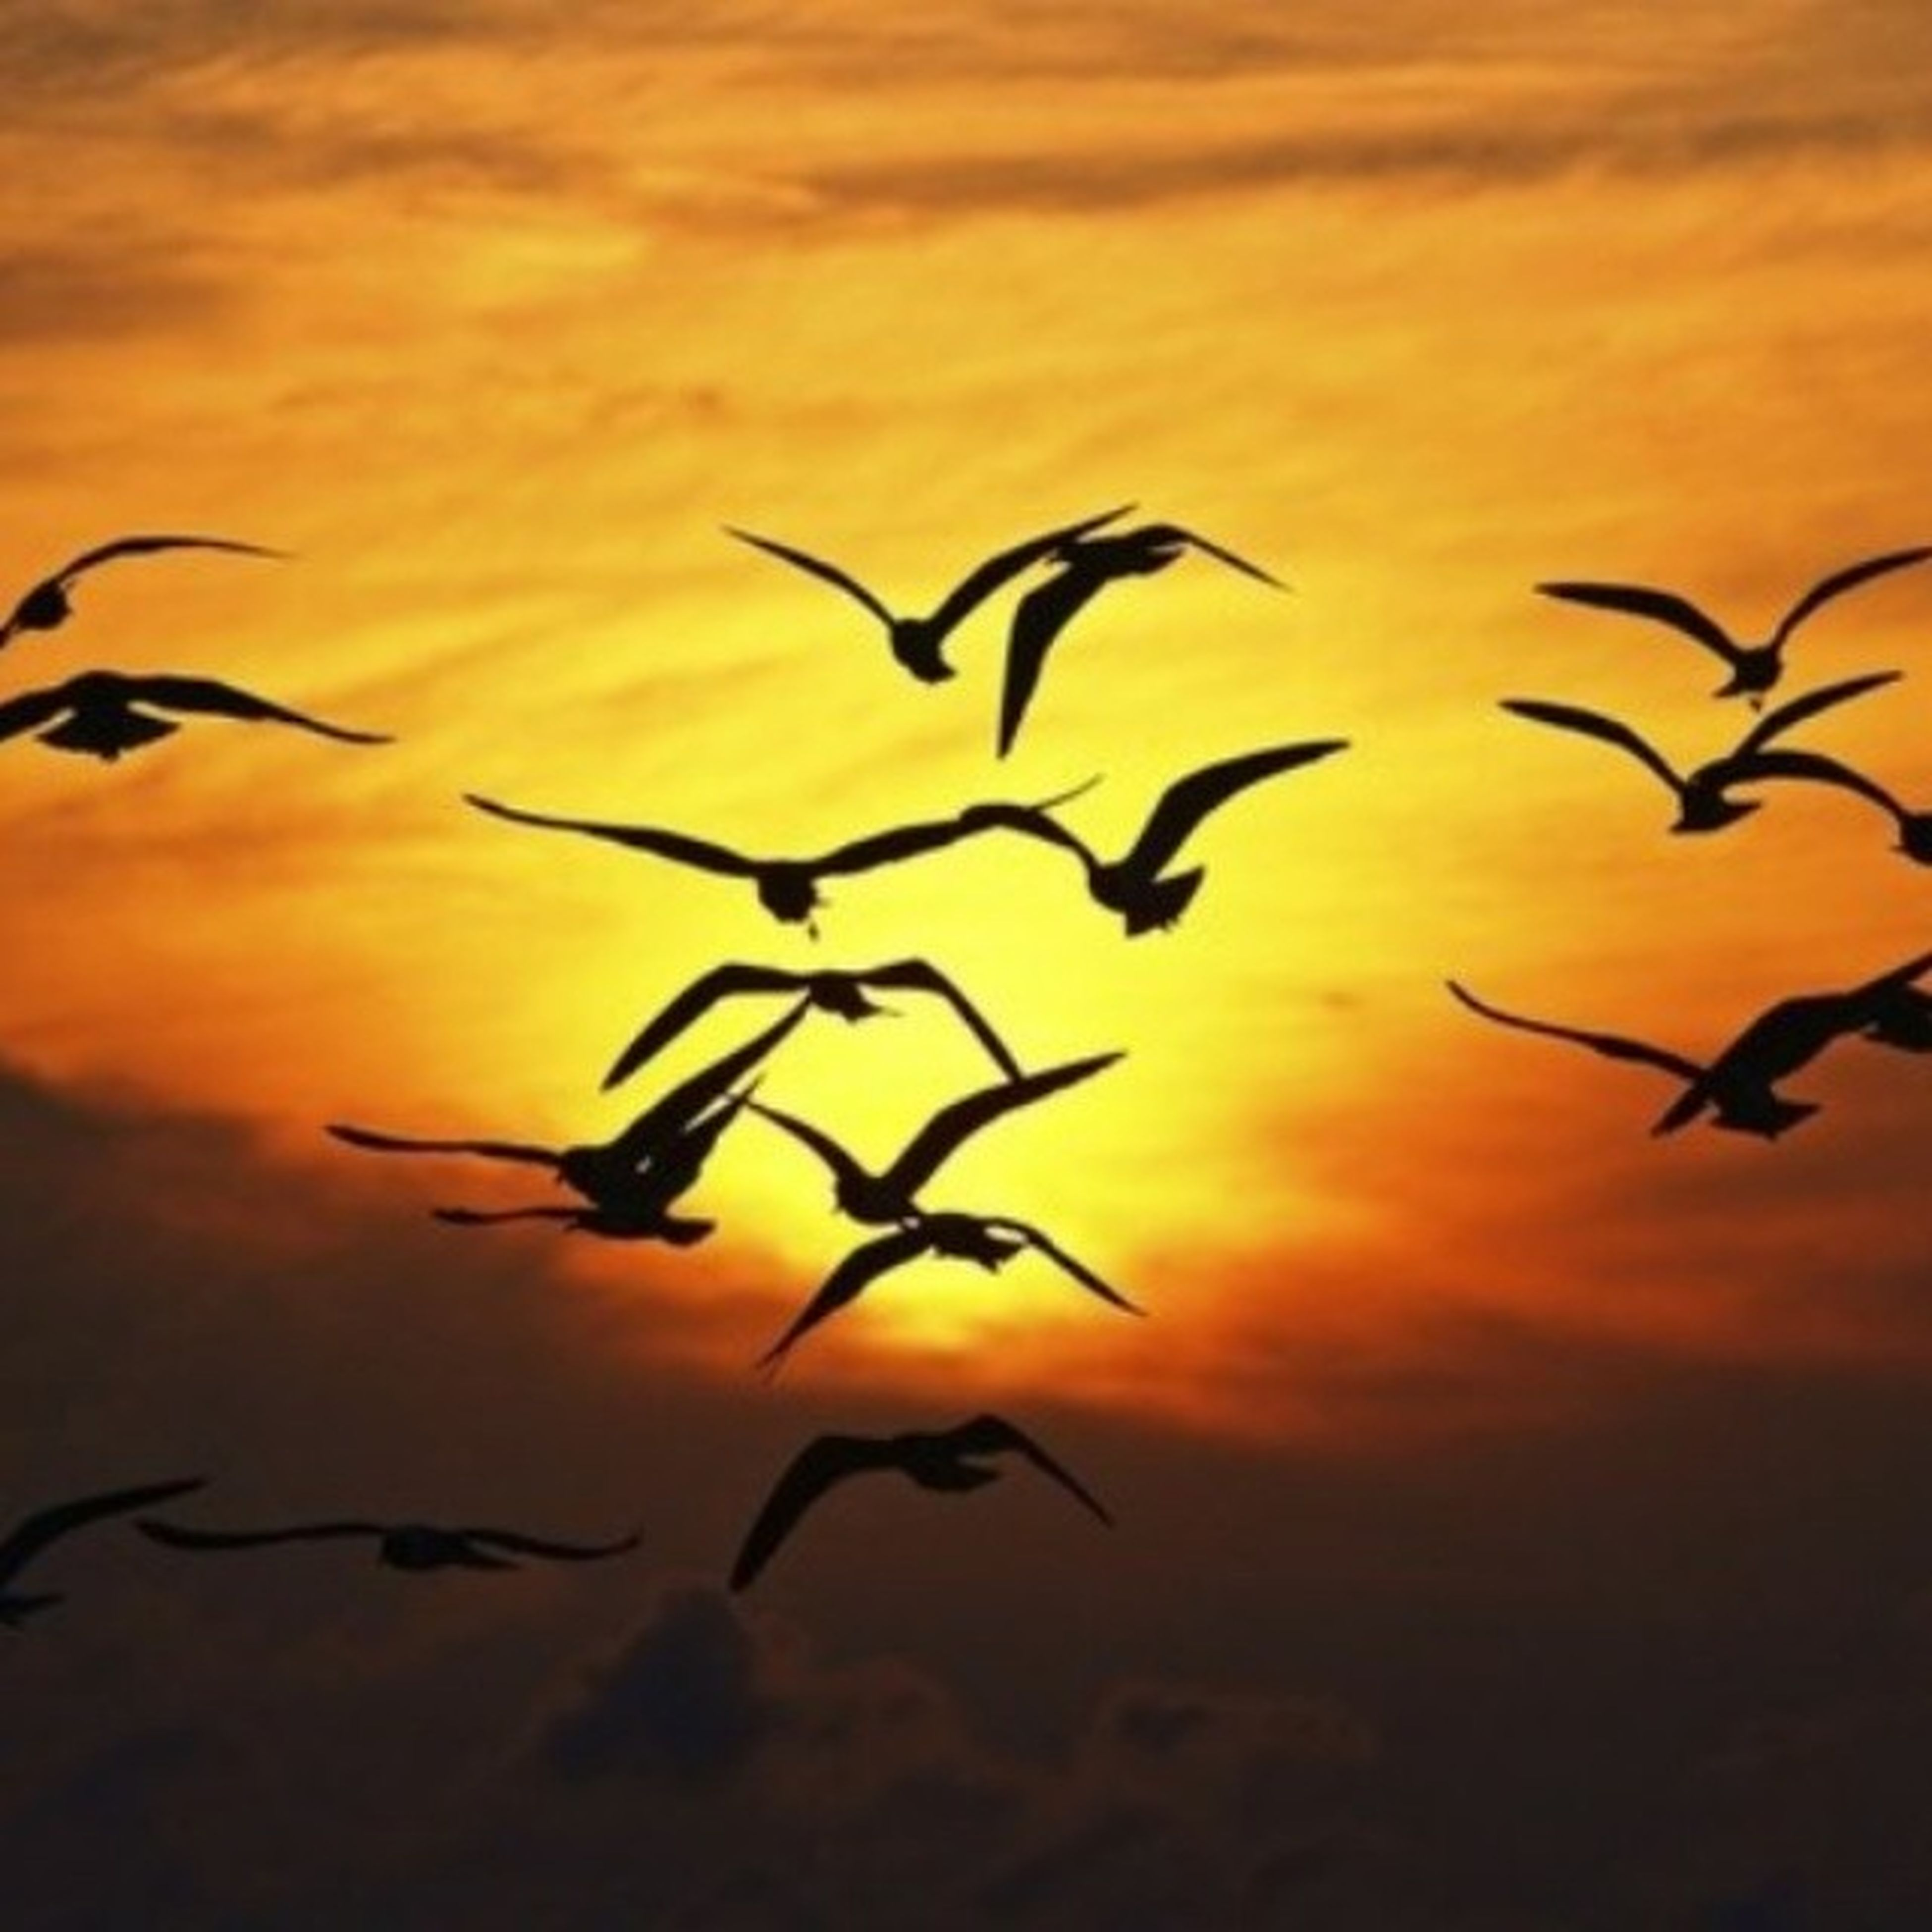 bird, sunset, animal themes, flying, orange color, sky, animals in the wild, silhouette, wildlife, flock of birds, cloud - sky, nature, low angle view, beauty in nature, mid-air, outdoors, no people, dusk, cloud